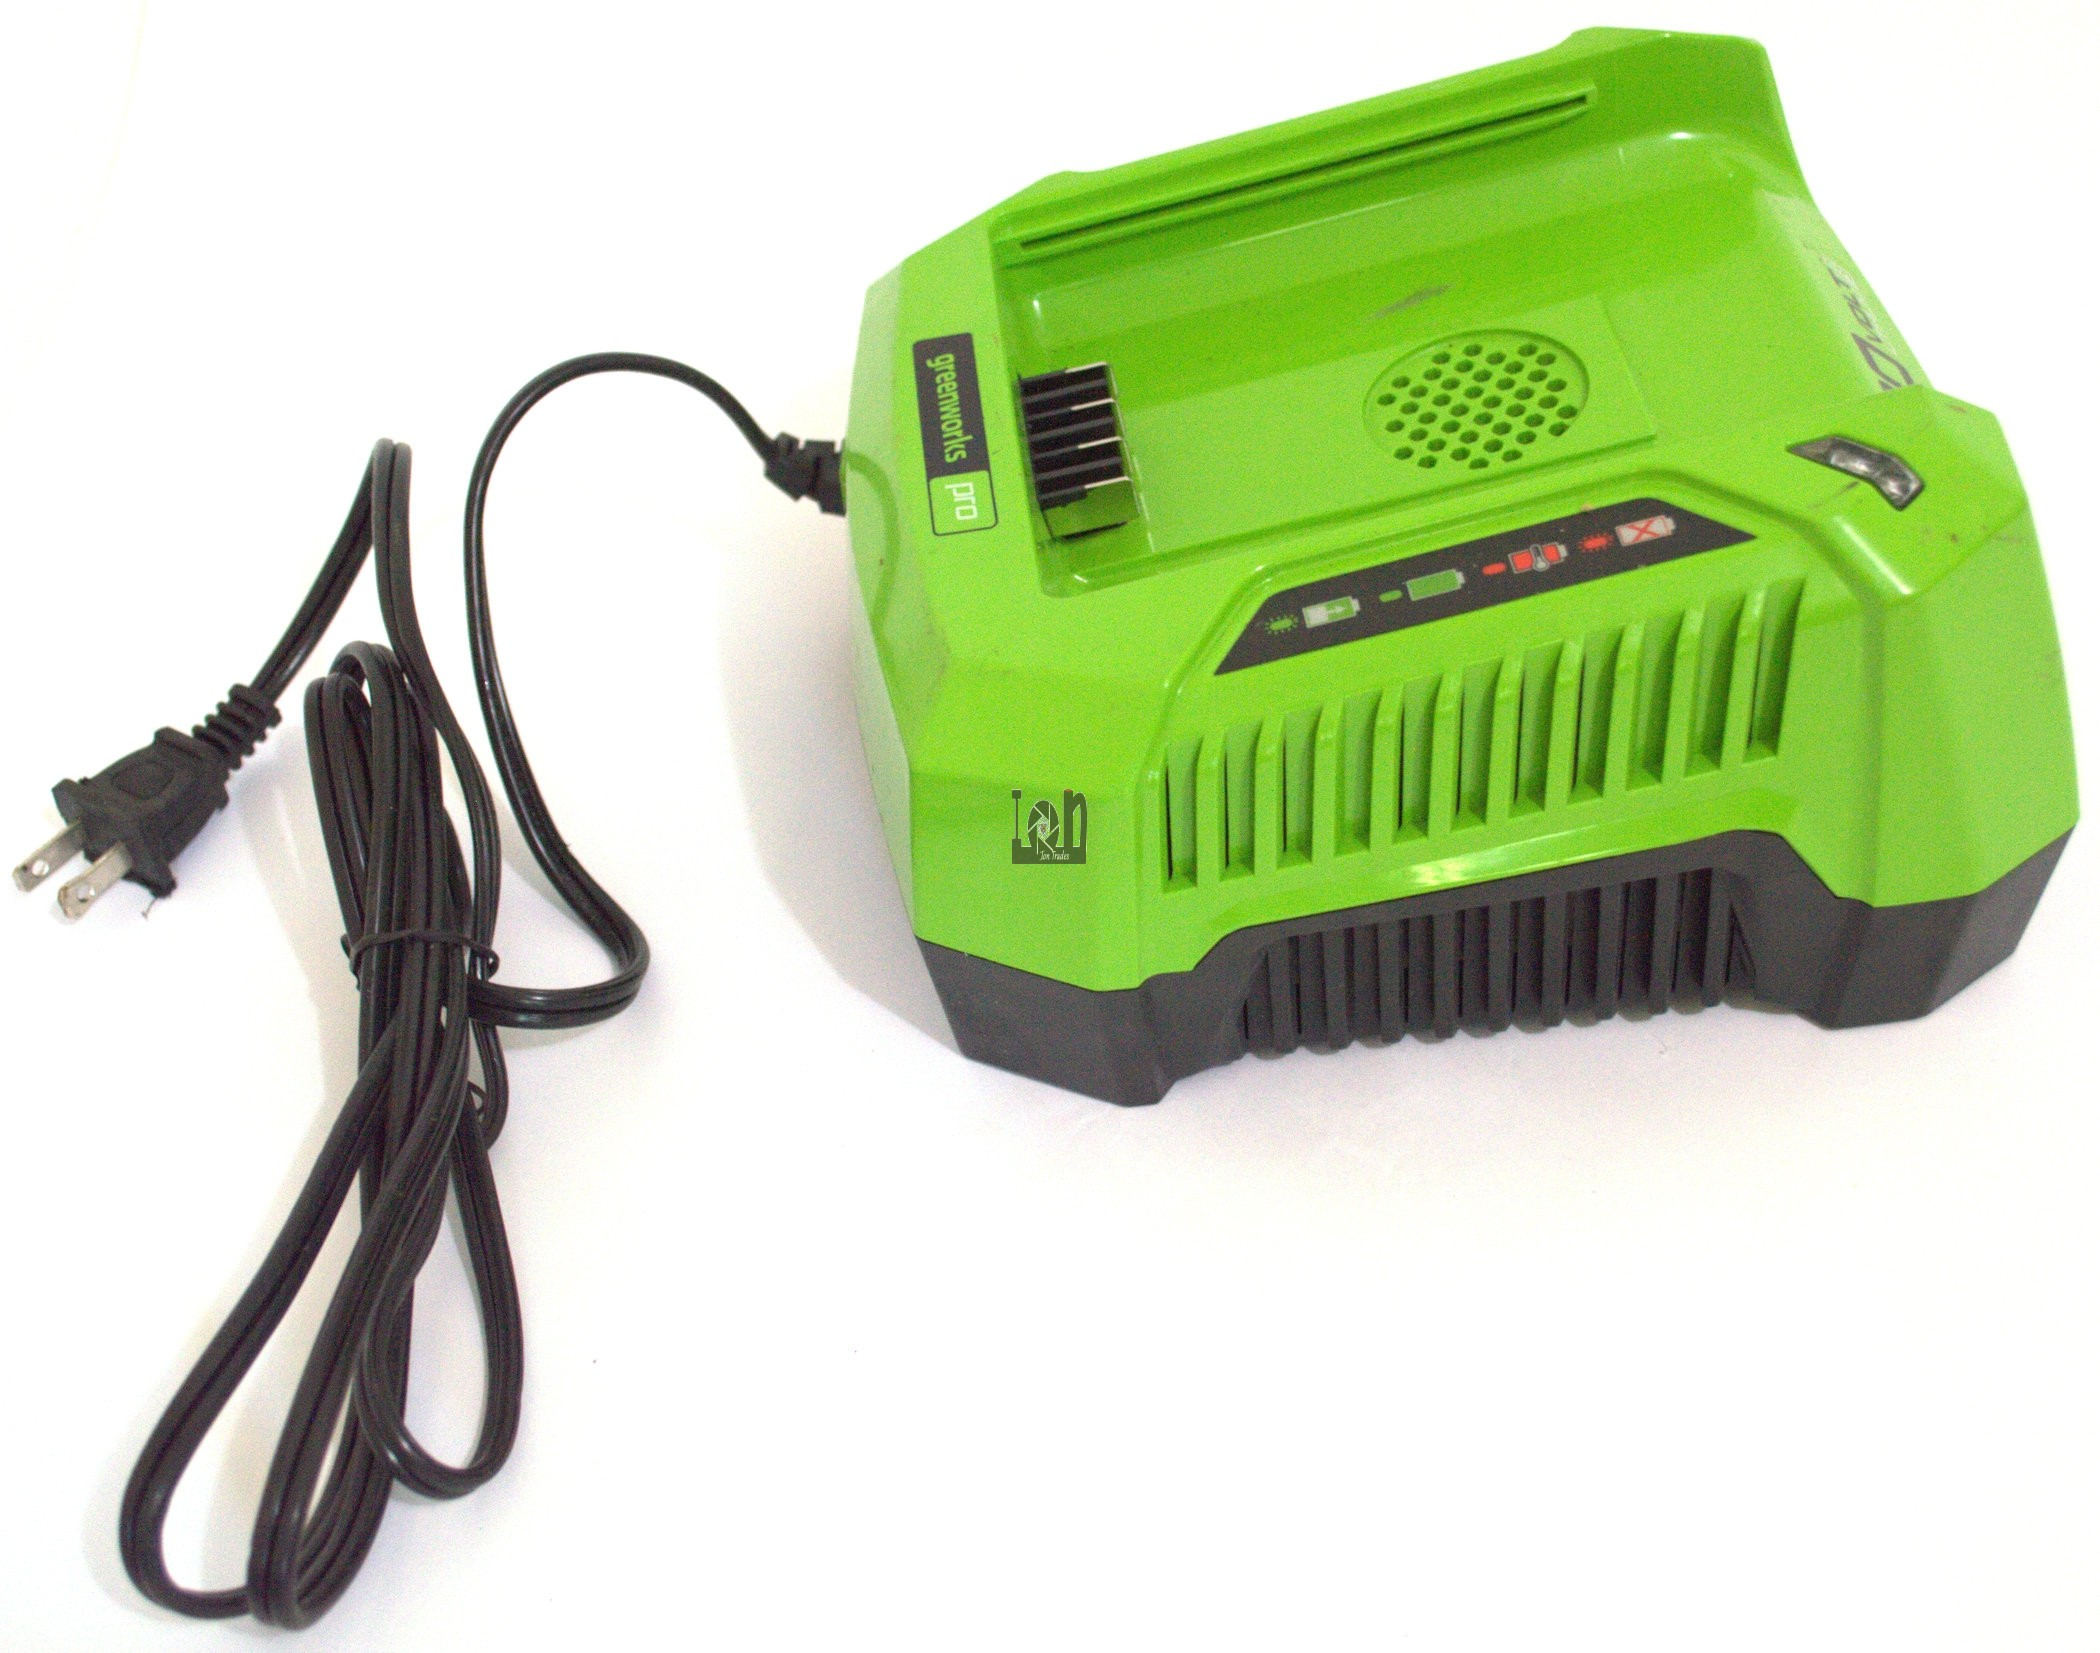 Greenworks 2901402 80V Lithium Max Battery Charger